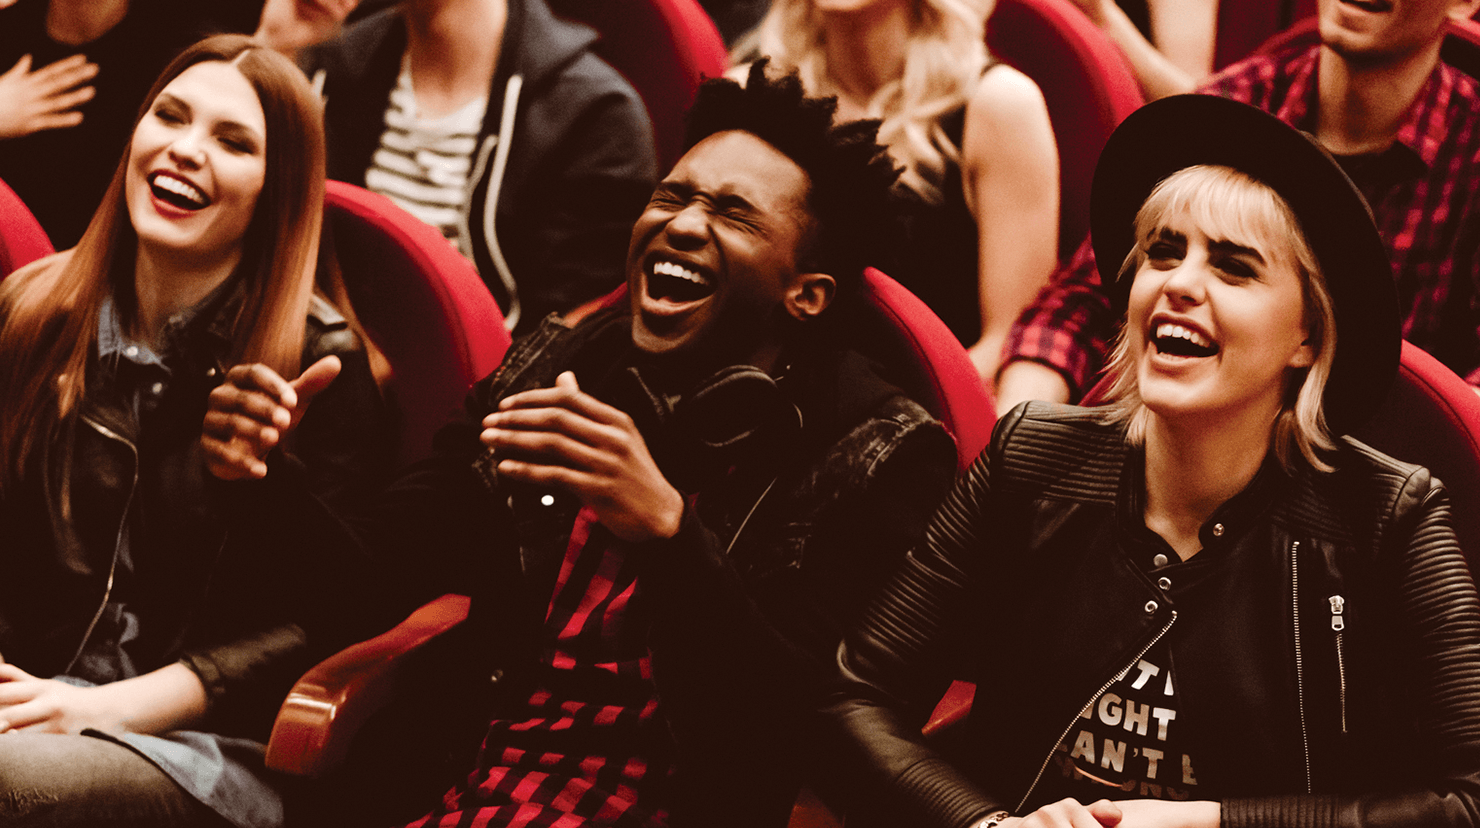 People sitting in audience laughing